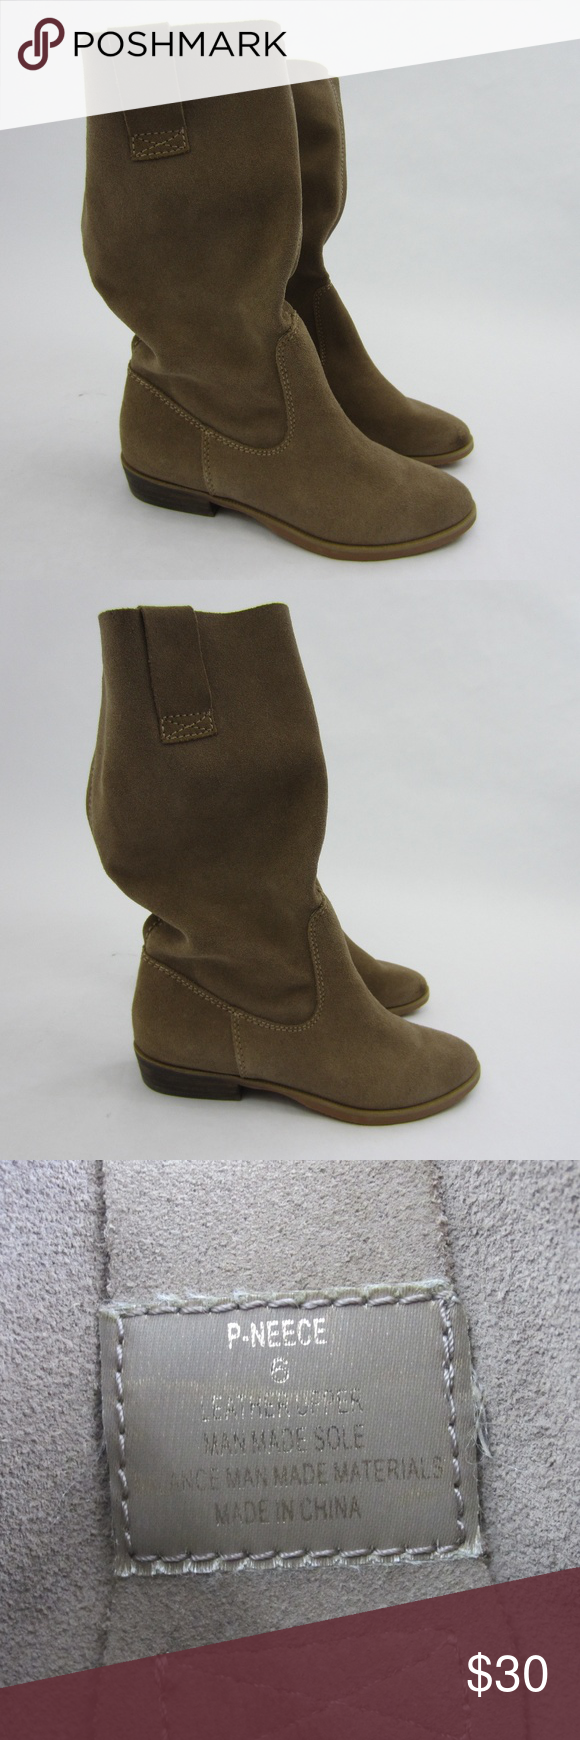 Steve Madden Leather Slouchy Low Heel Boot *S10